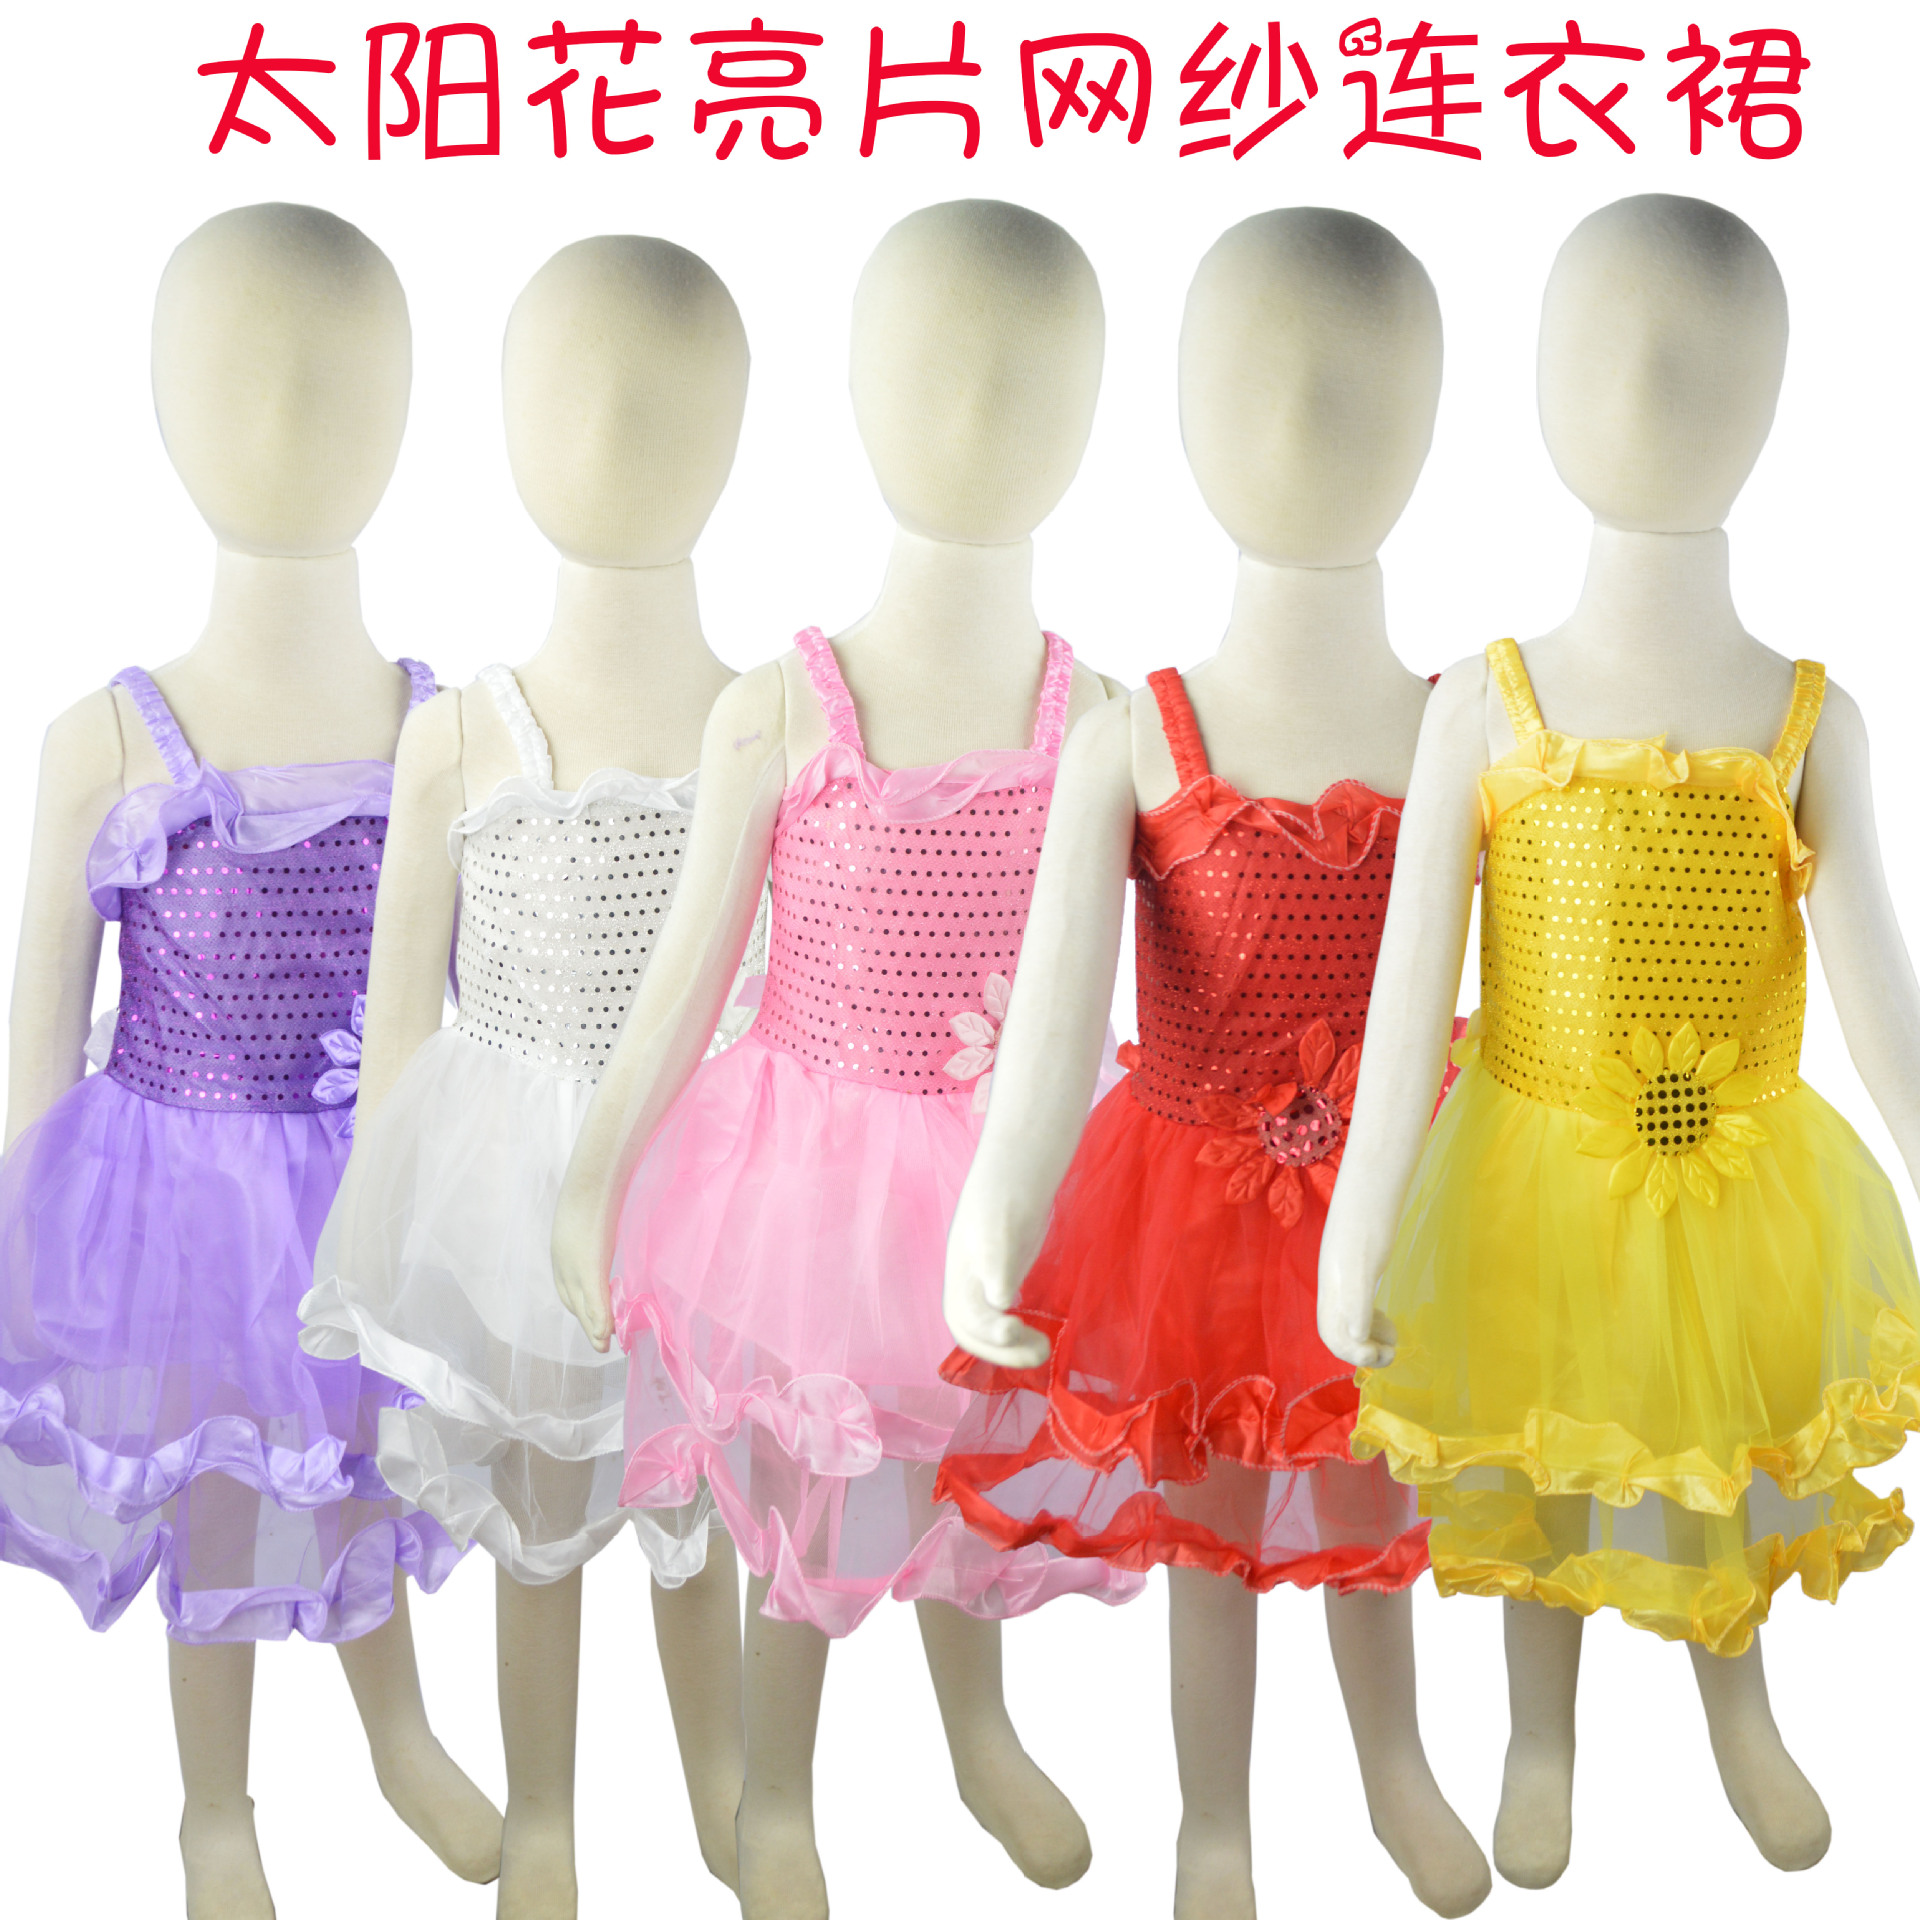 CHILDREN'S Dress Flower Fairy Dress Dance Costume Girls' Princess Skirt Children Section Dance Show Skirt